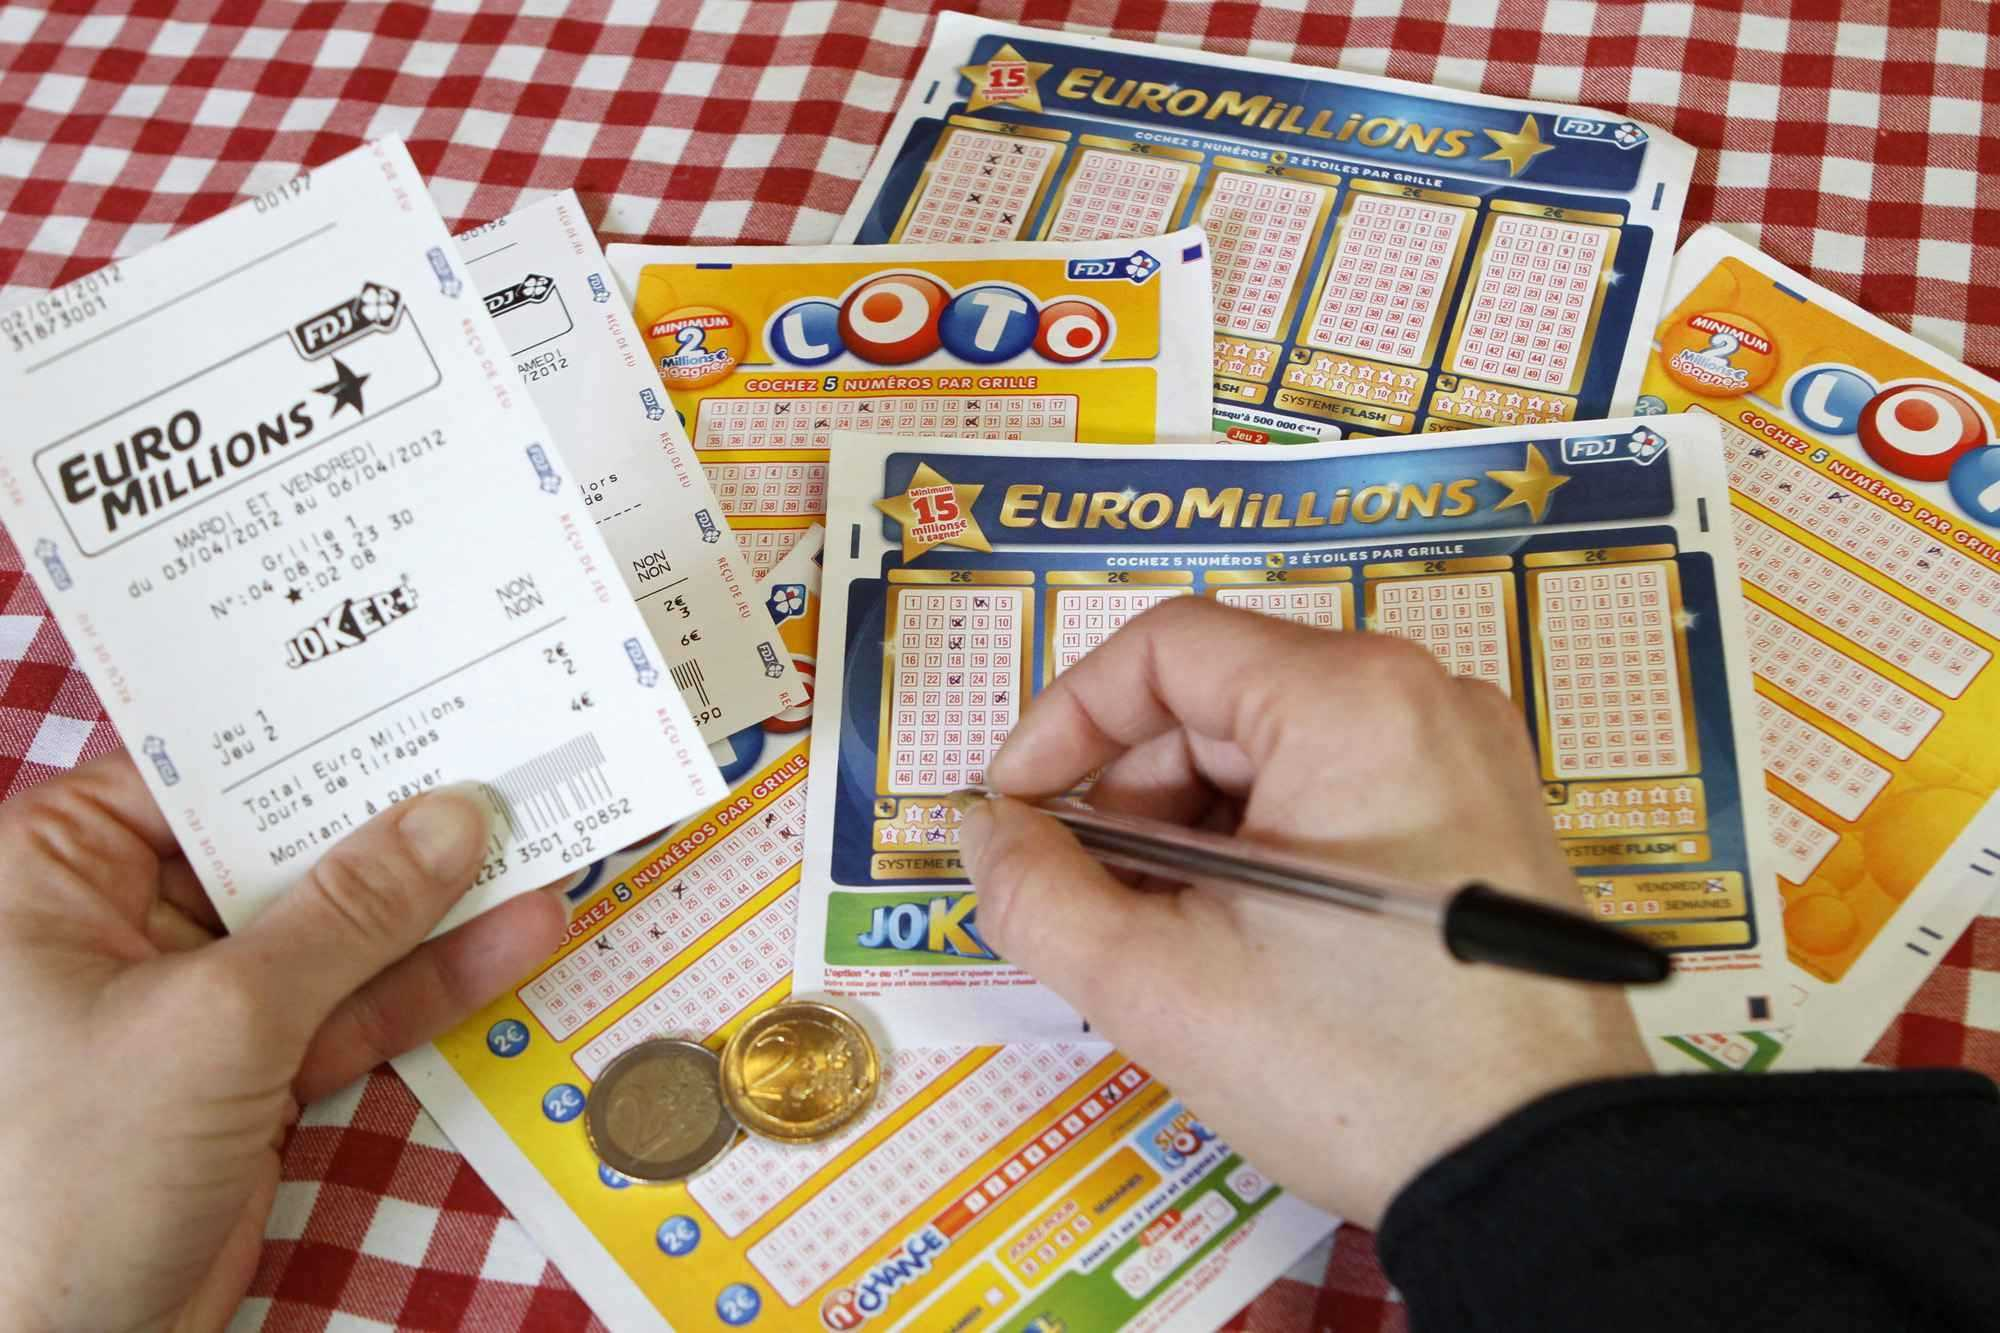 Statistiques d'euromillions | stats d'euro lottery | euro-millions.com